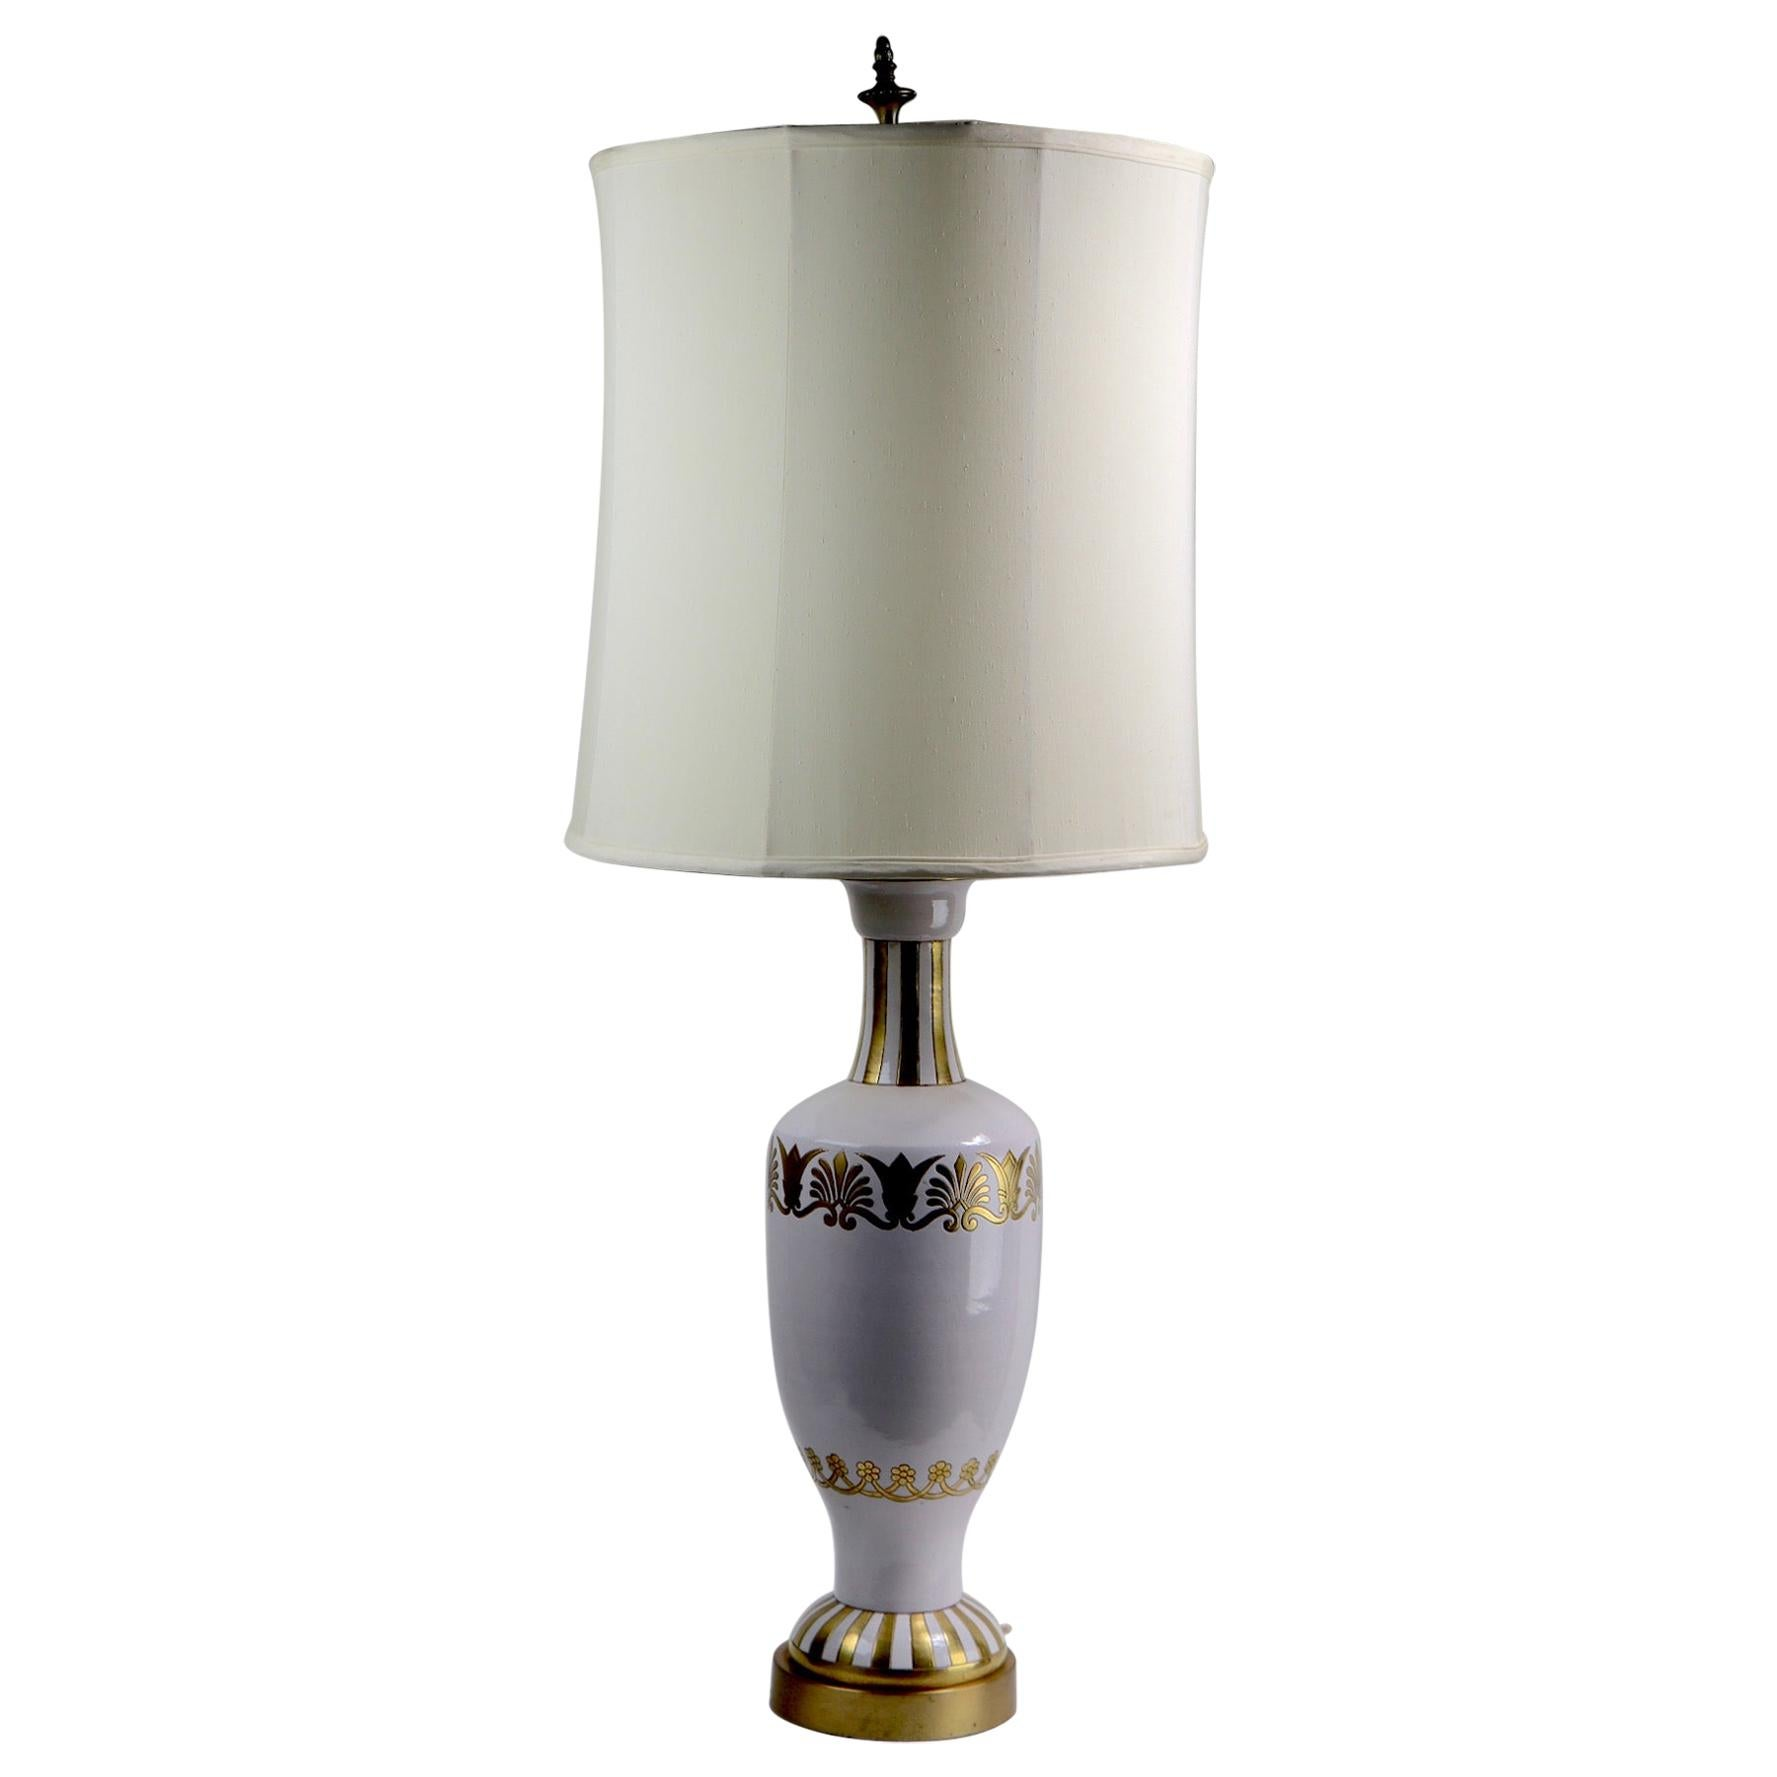 Ceramic White and Gold Gilt Table Lamp by Ugo Zaccagnini